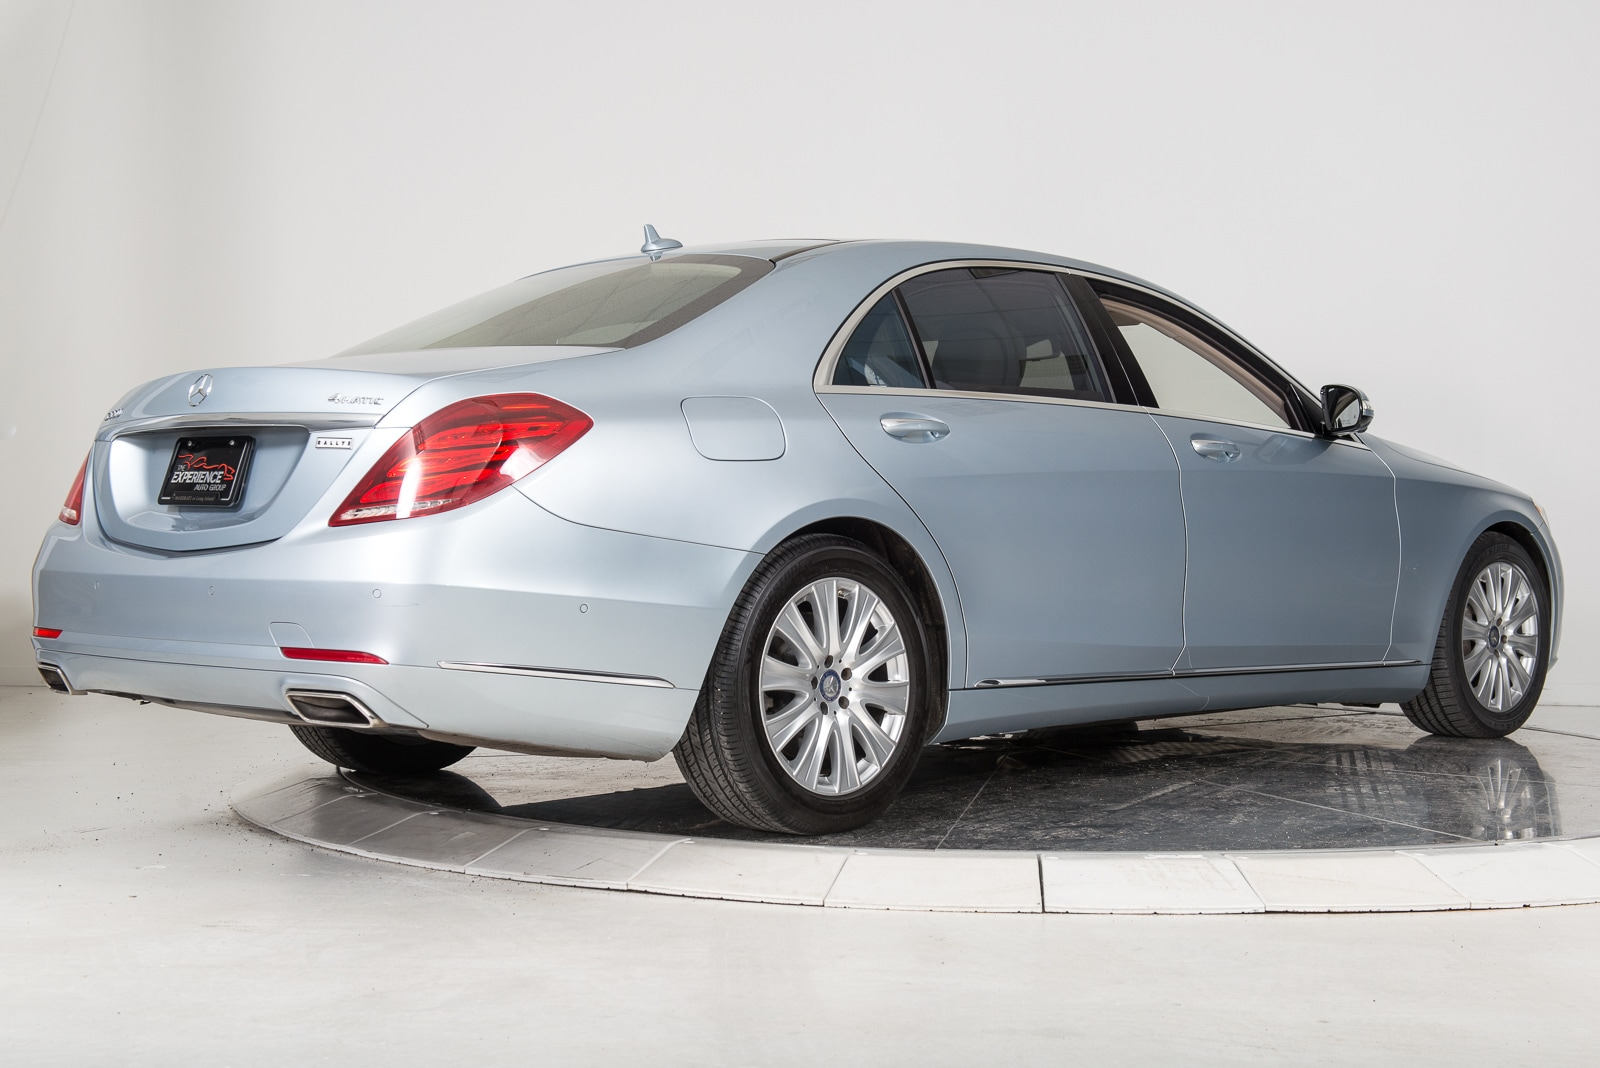 Used 2015 mercedes benz s550 4matic for sale plainview for Used mercedes benz s550 for sale